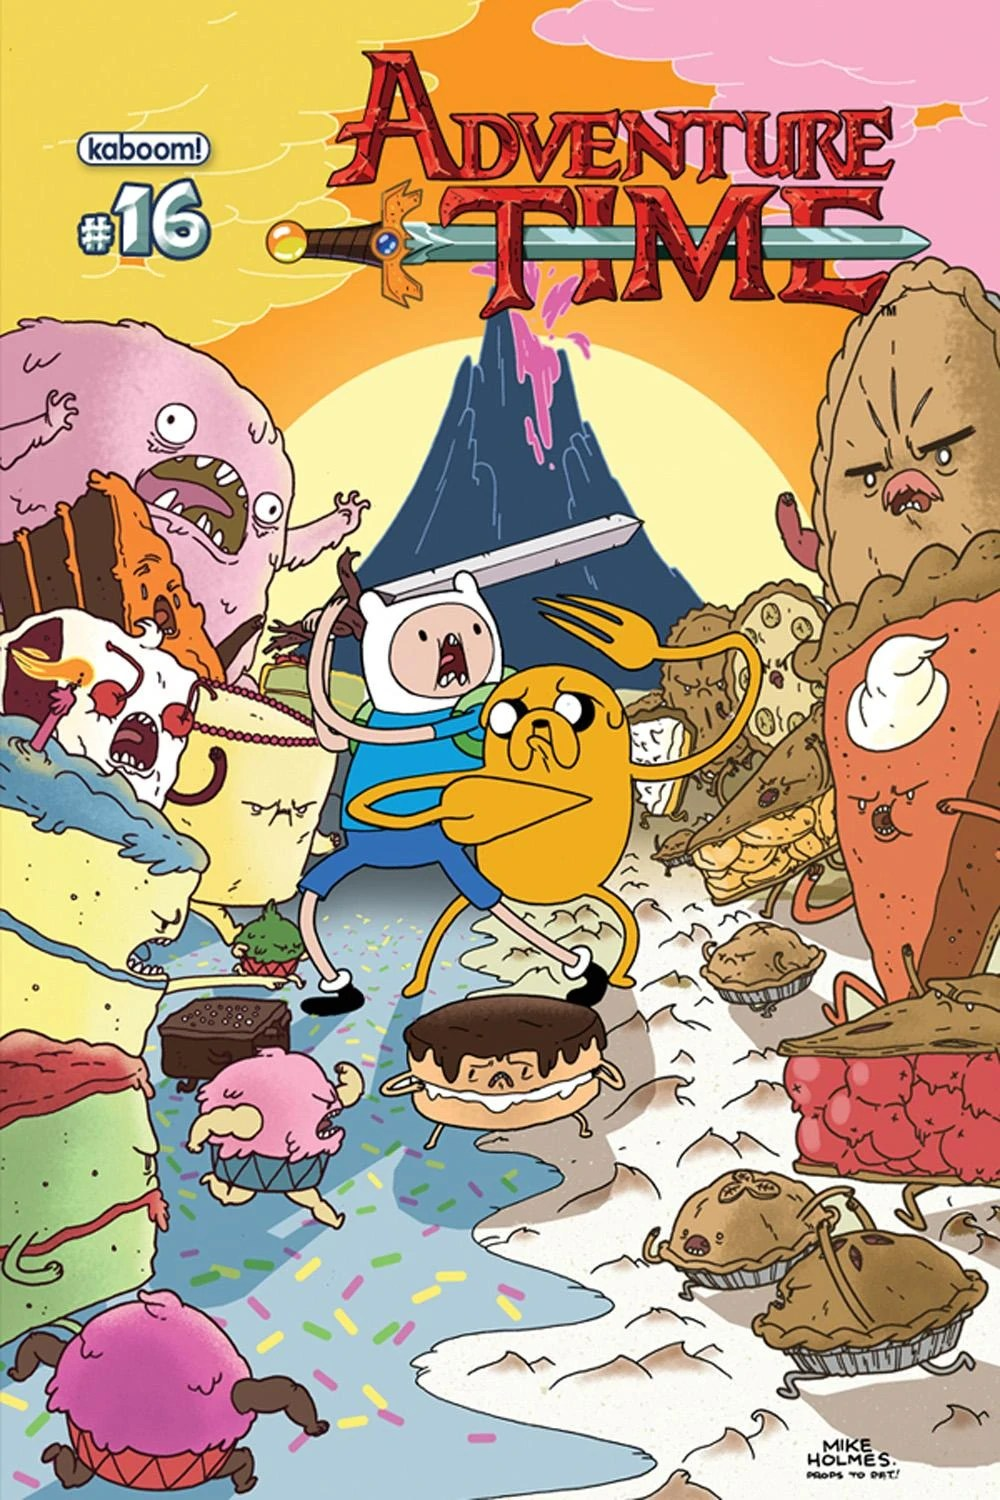 Issue 16 Adventure Time Wiki Fandom Powered By Wikia